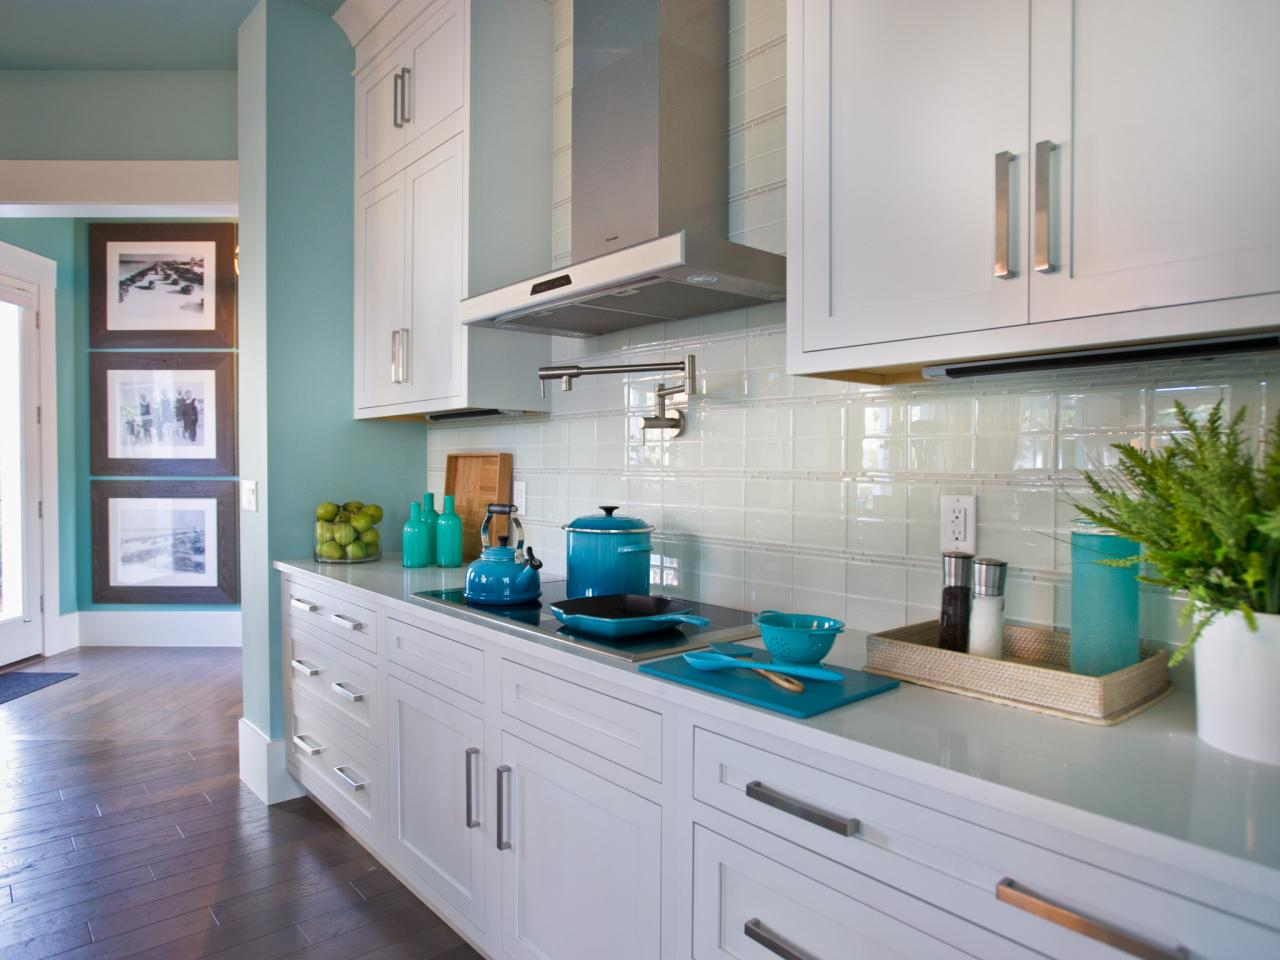 kitchen-backsplash-glass-tile_4x3-jpg-rend-hgtvcom-1280-960